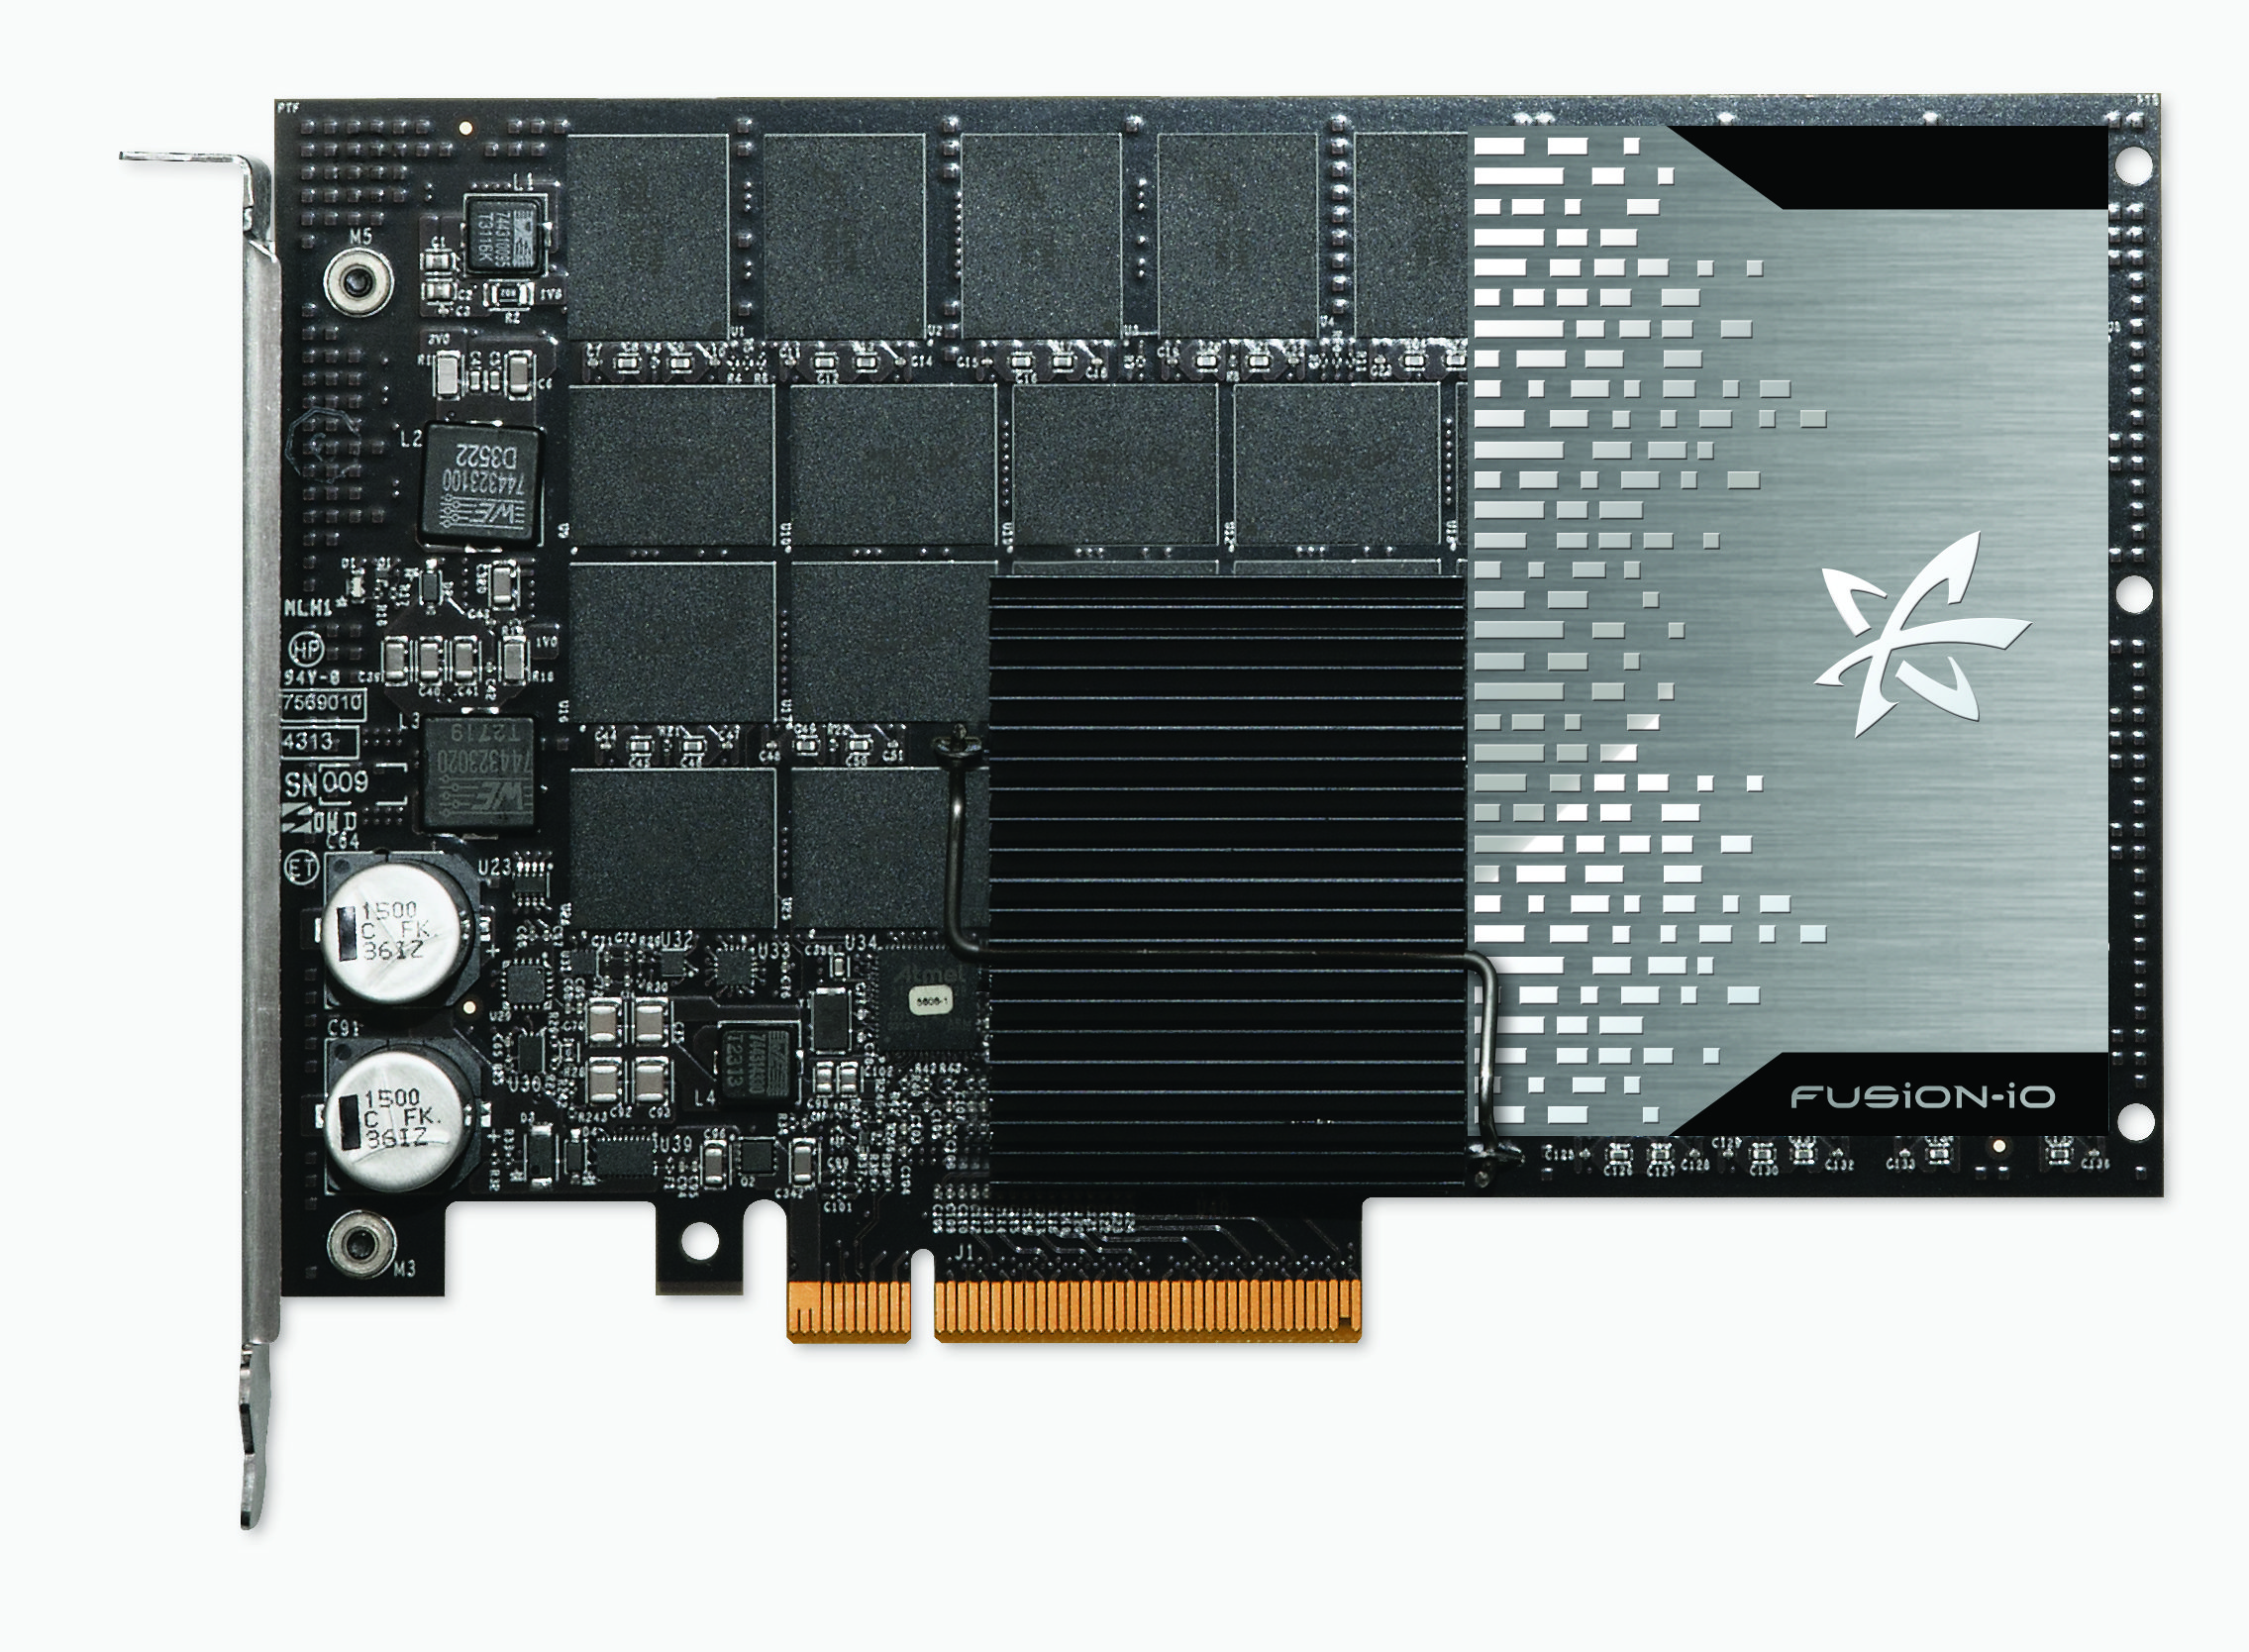 Fusion-io releases Atomic Series flash memory platform - DCD